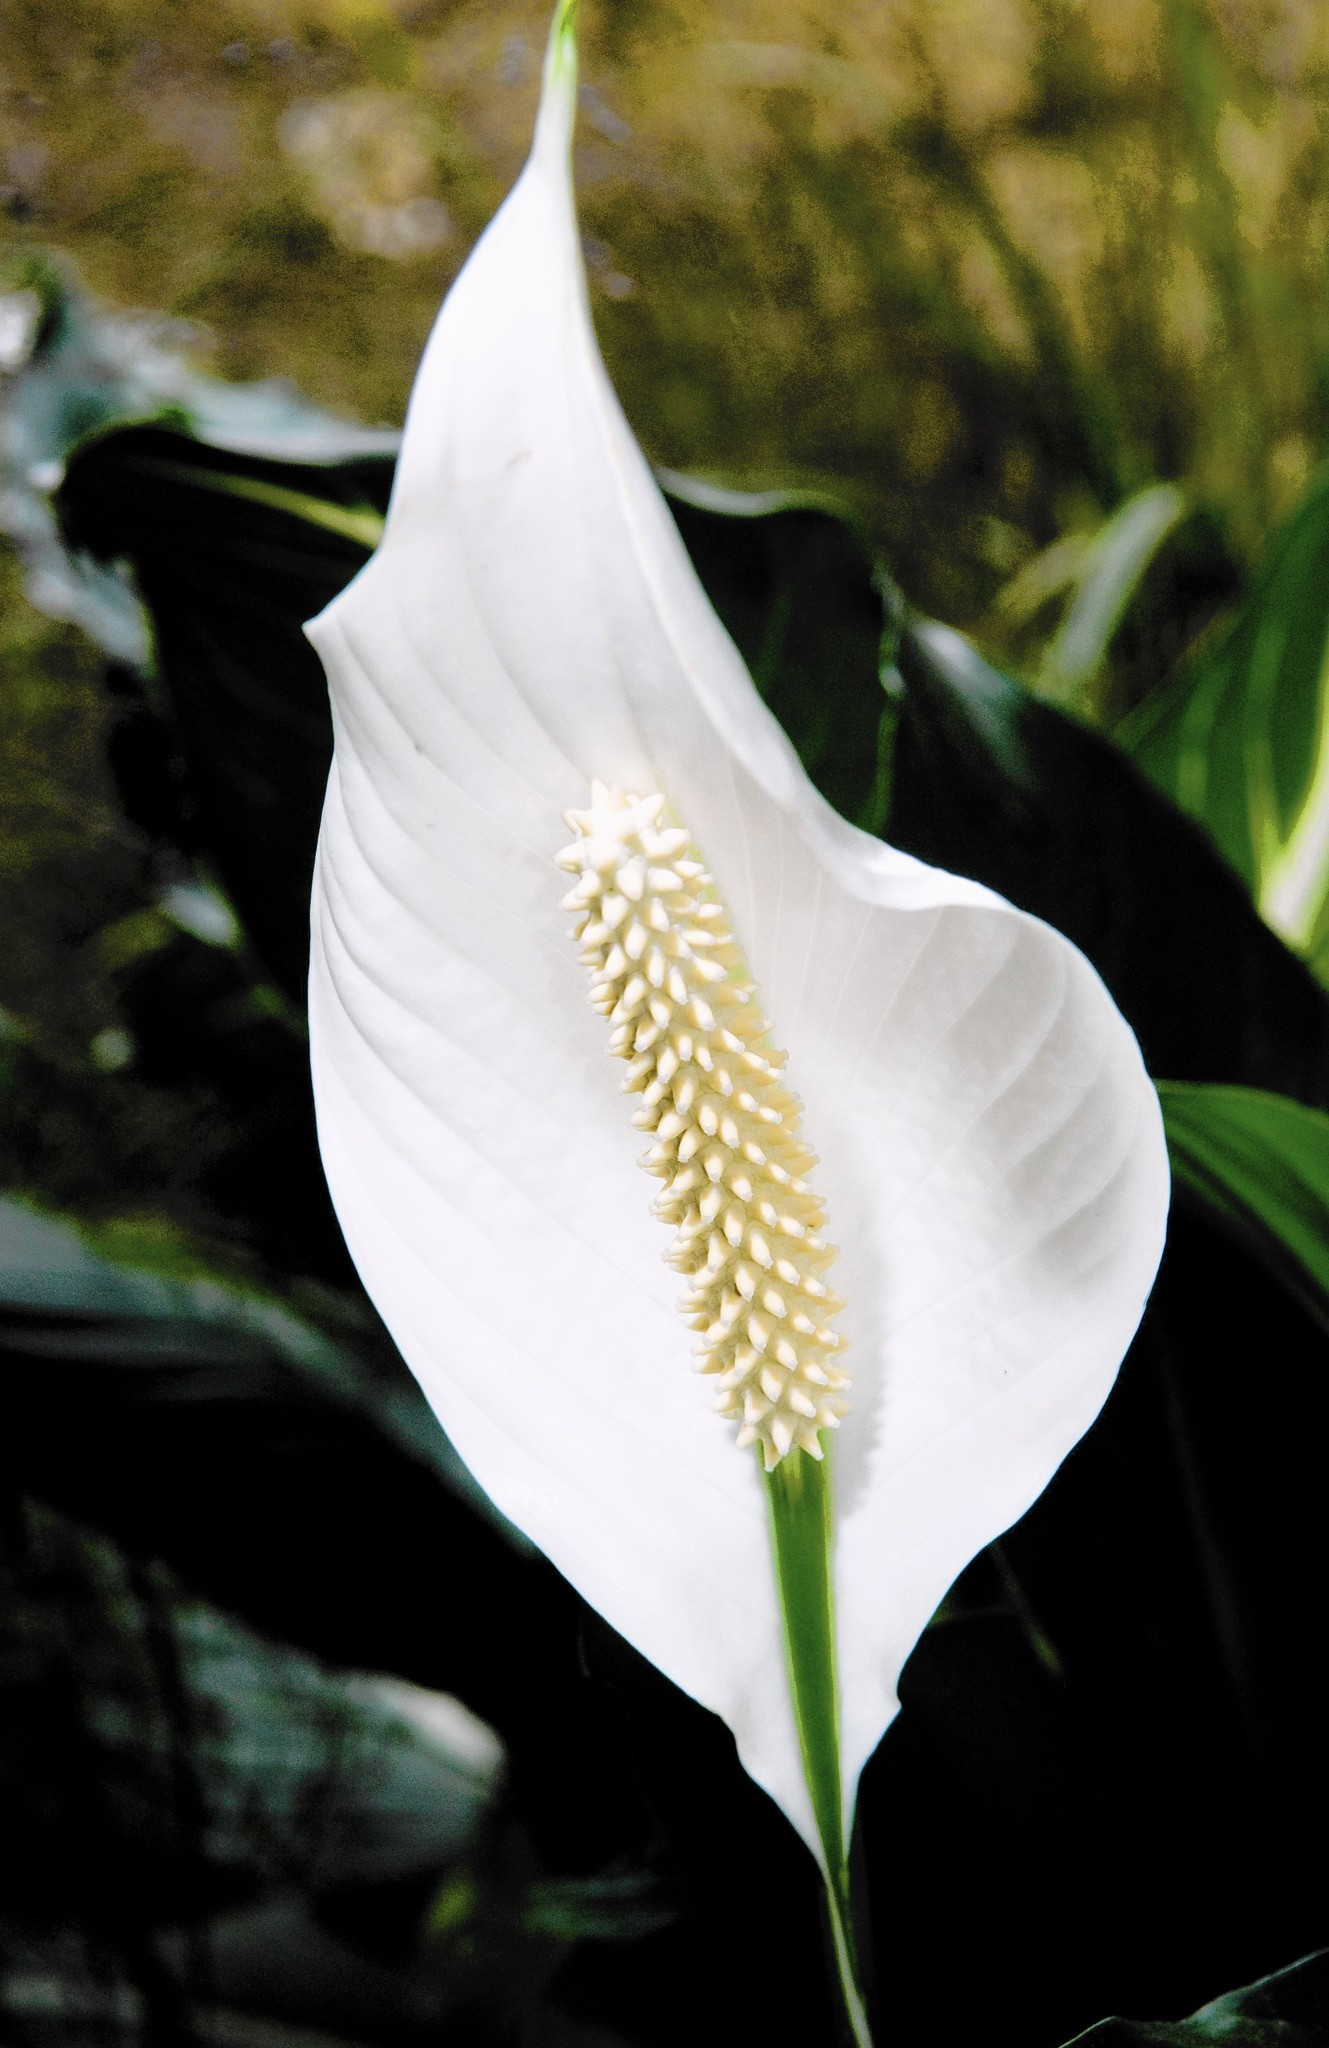 Bringing peace lily back to health requires attention to its growing bringing peace lily back to health requires attention to its growing needs chicago tribune izmirmasajfo